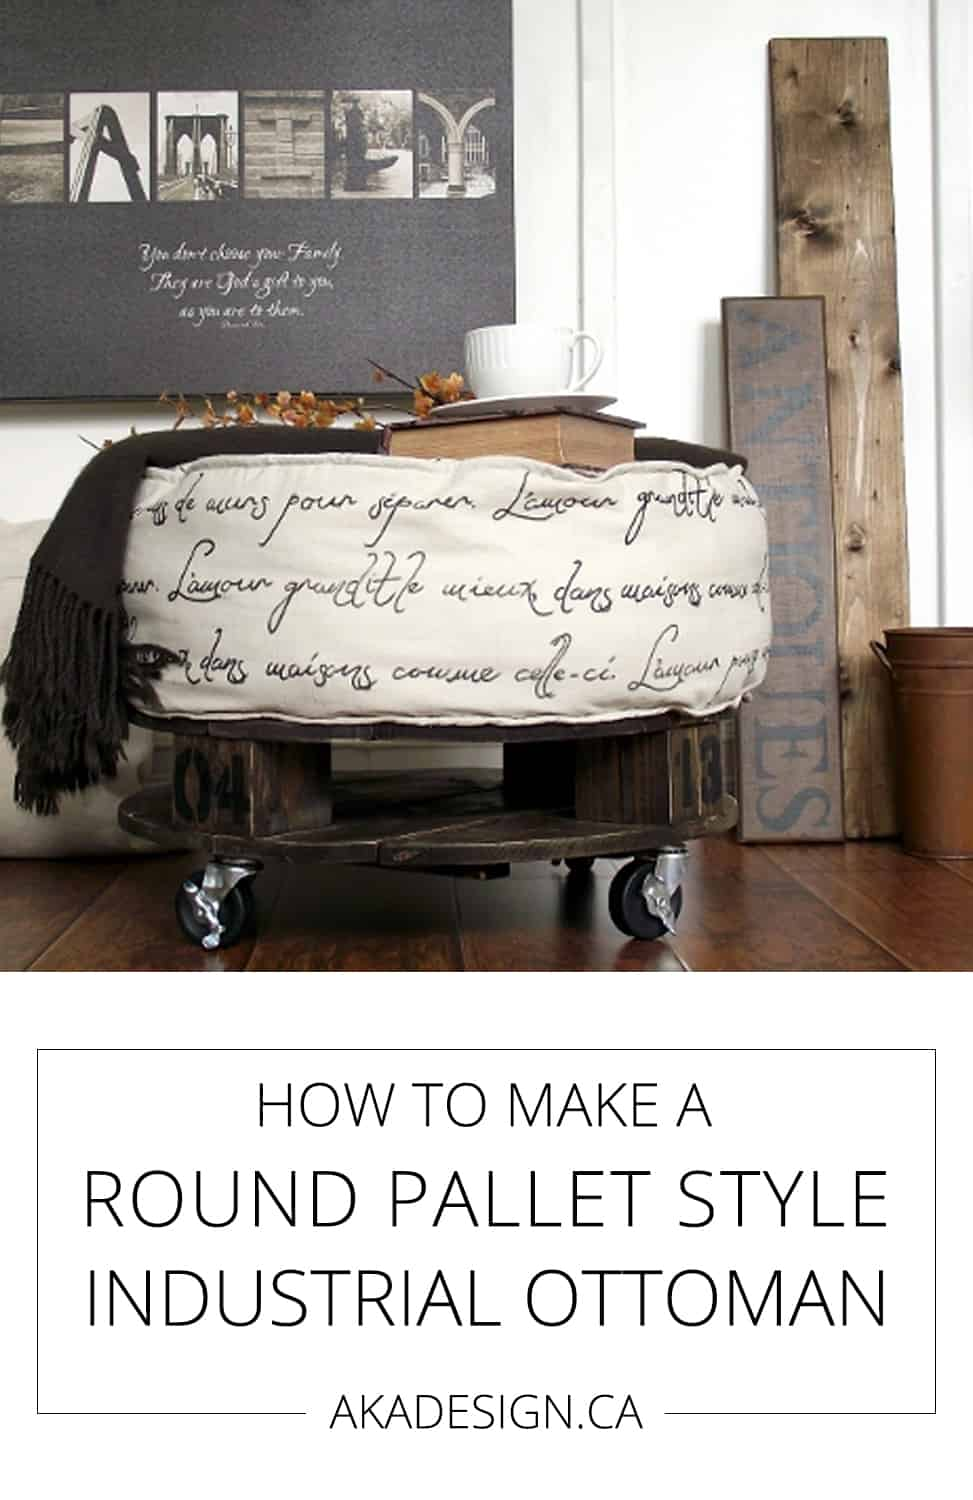 What a fun looking ottoman! How to make a round, pallet-style industrial ottoman via @akadesigndotca